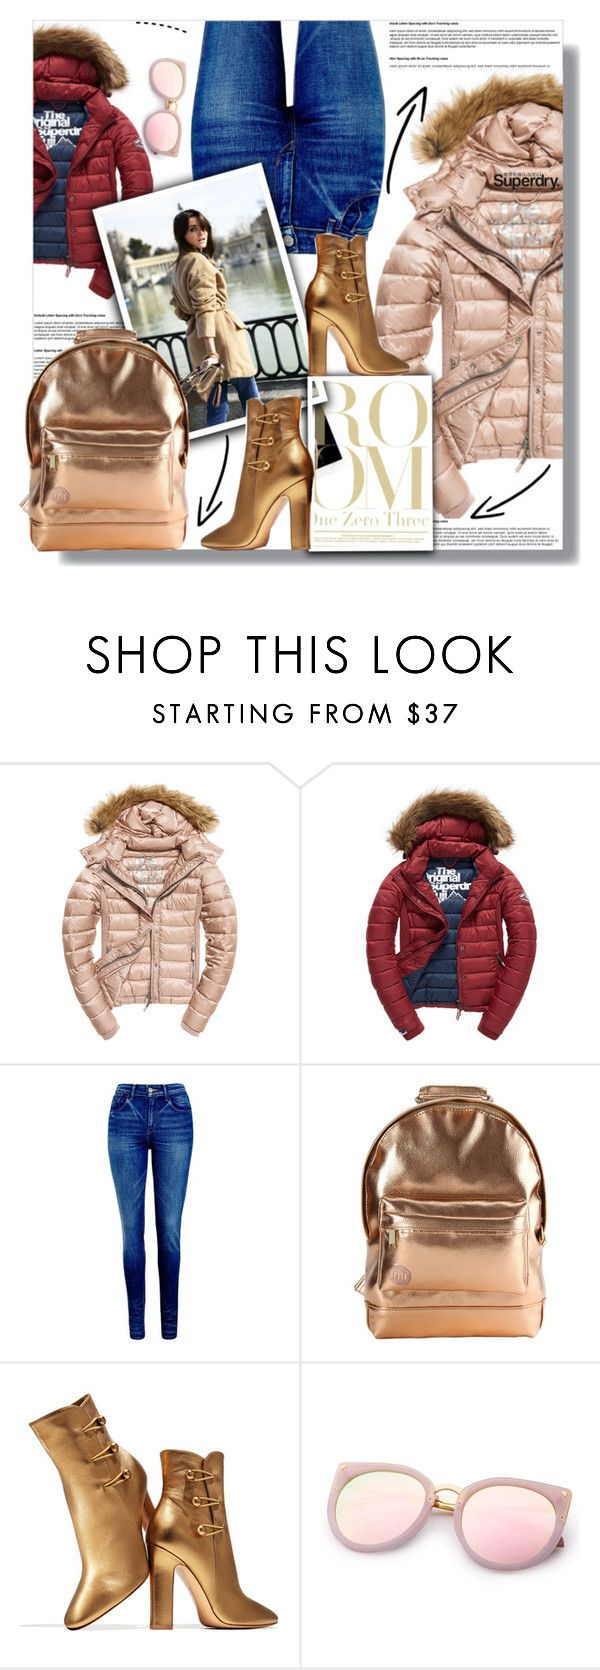 """""""The Cover Up – Jackets by Superdry: Contest Entry"""" by sweta-gupta ❤ liked on Polyvore featuring Fuji, Levi's, Mi-Pac, Gianvito Rossi and Superdry"""